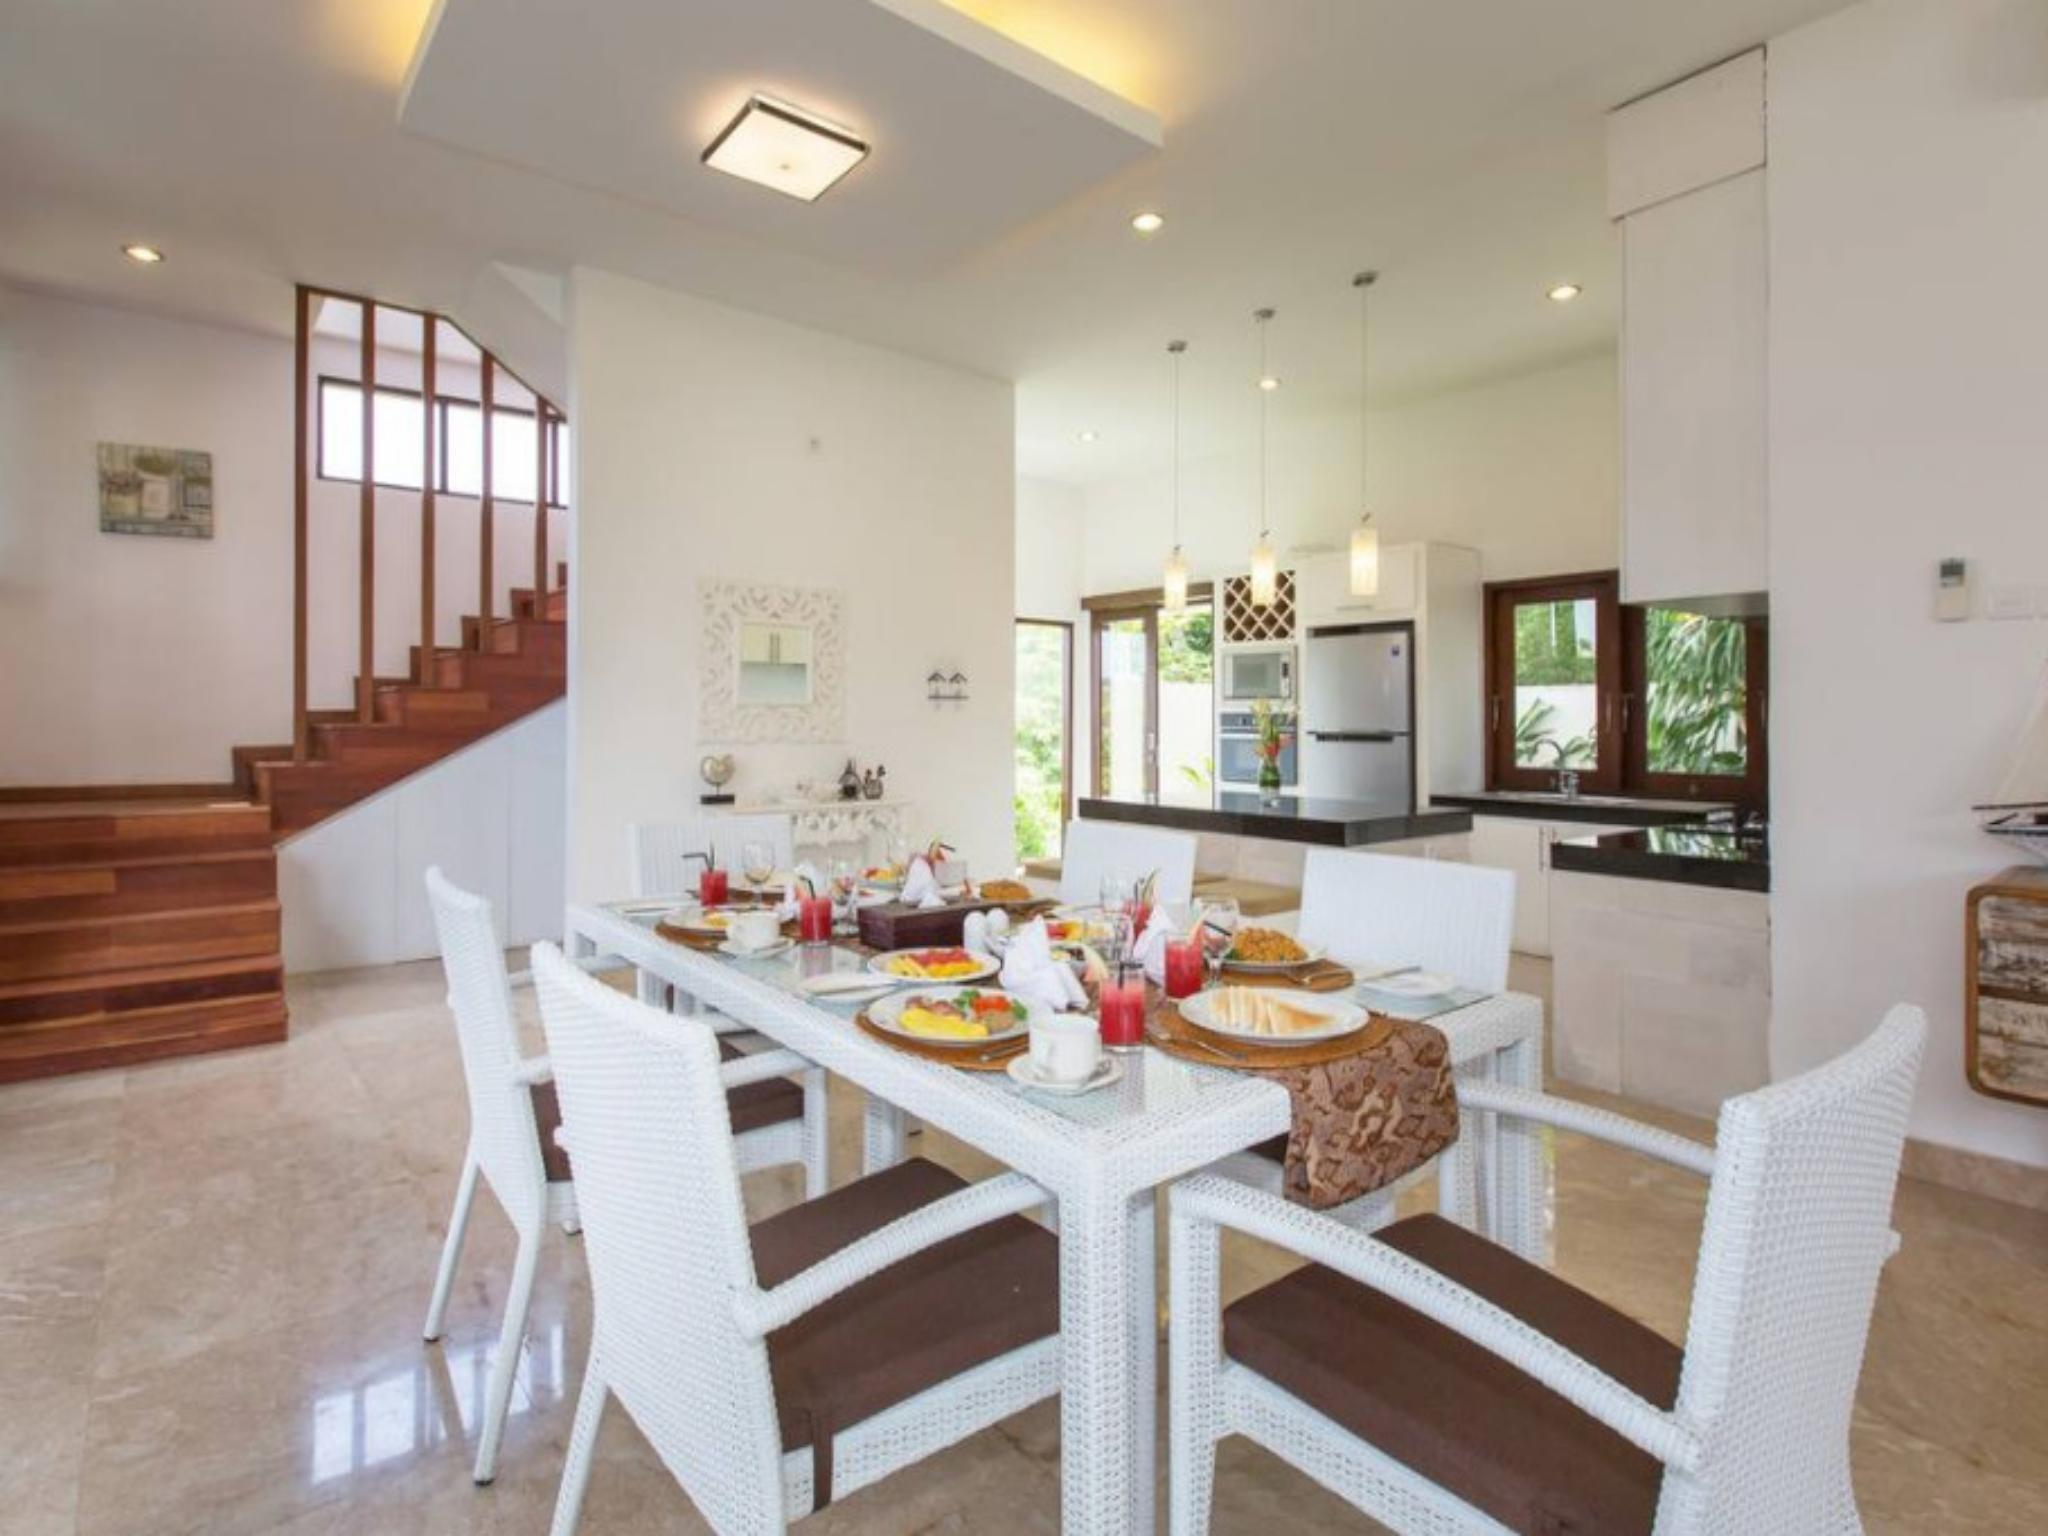 3 Bedroom Villa1 in Canggu Club Residence